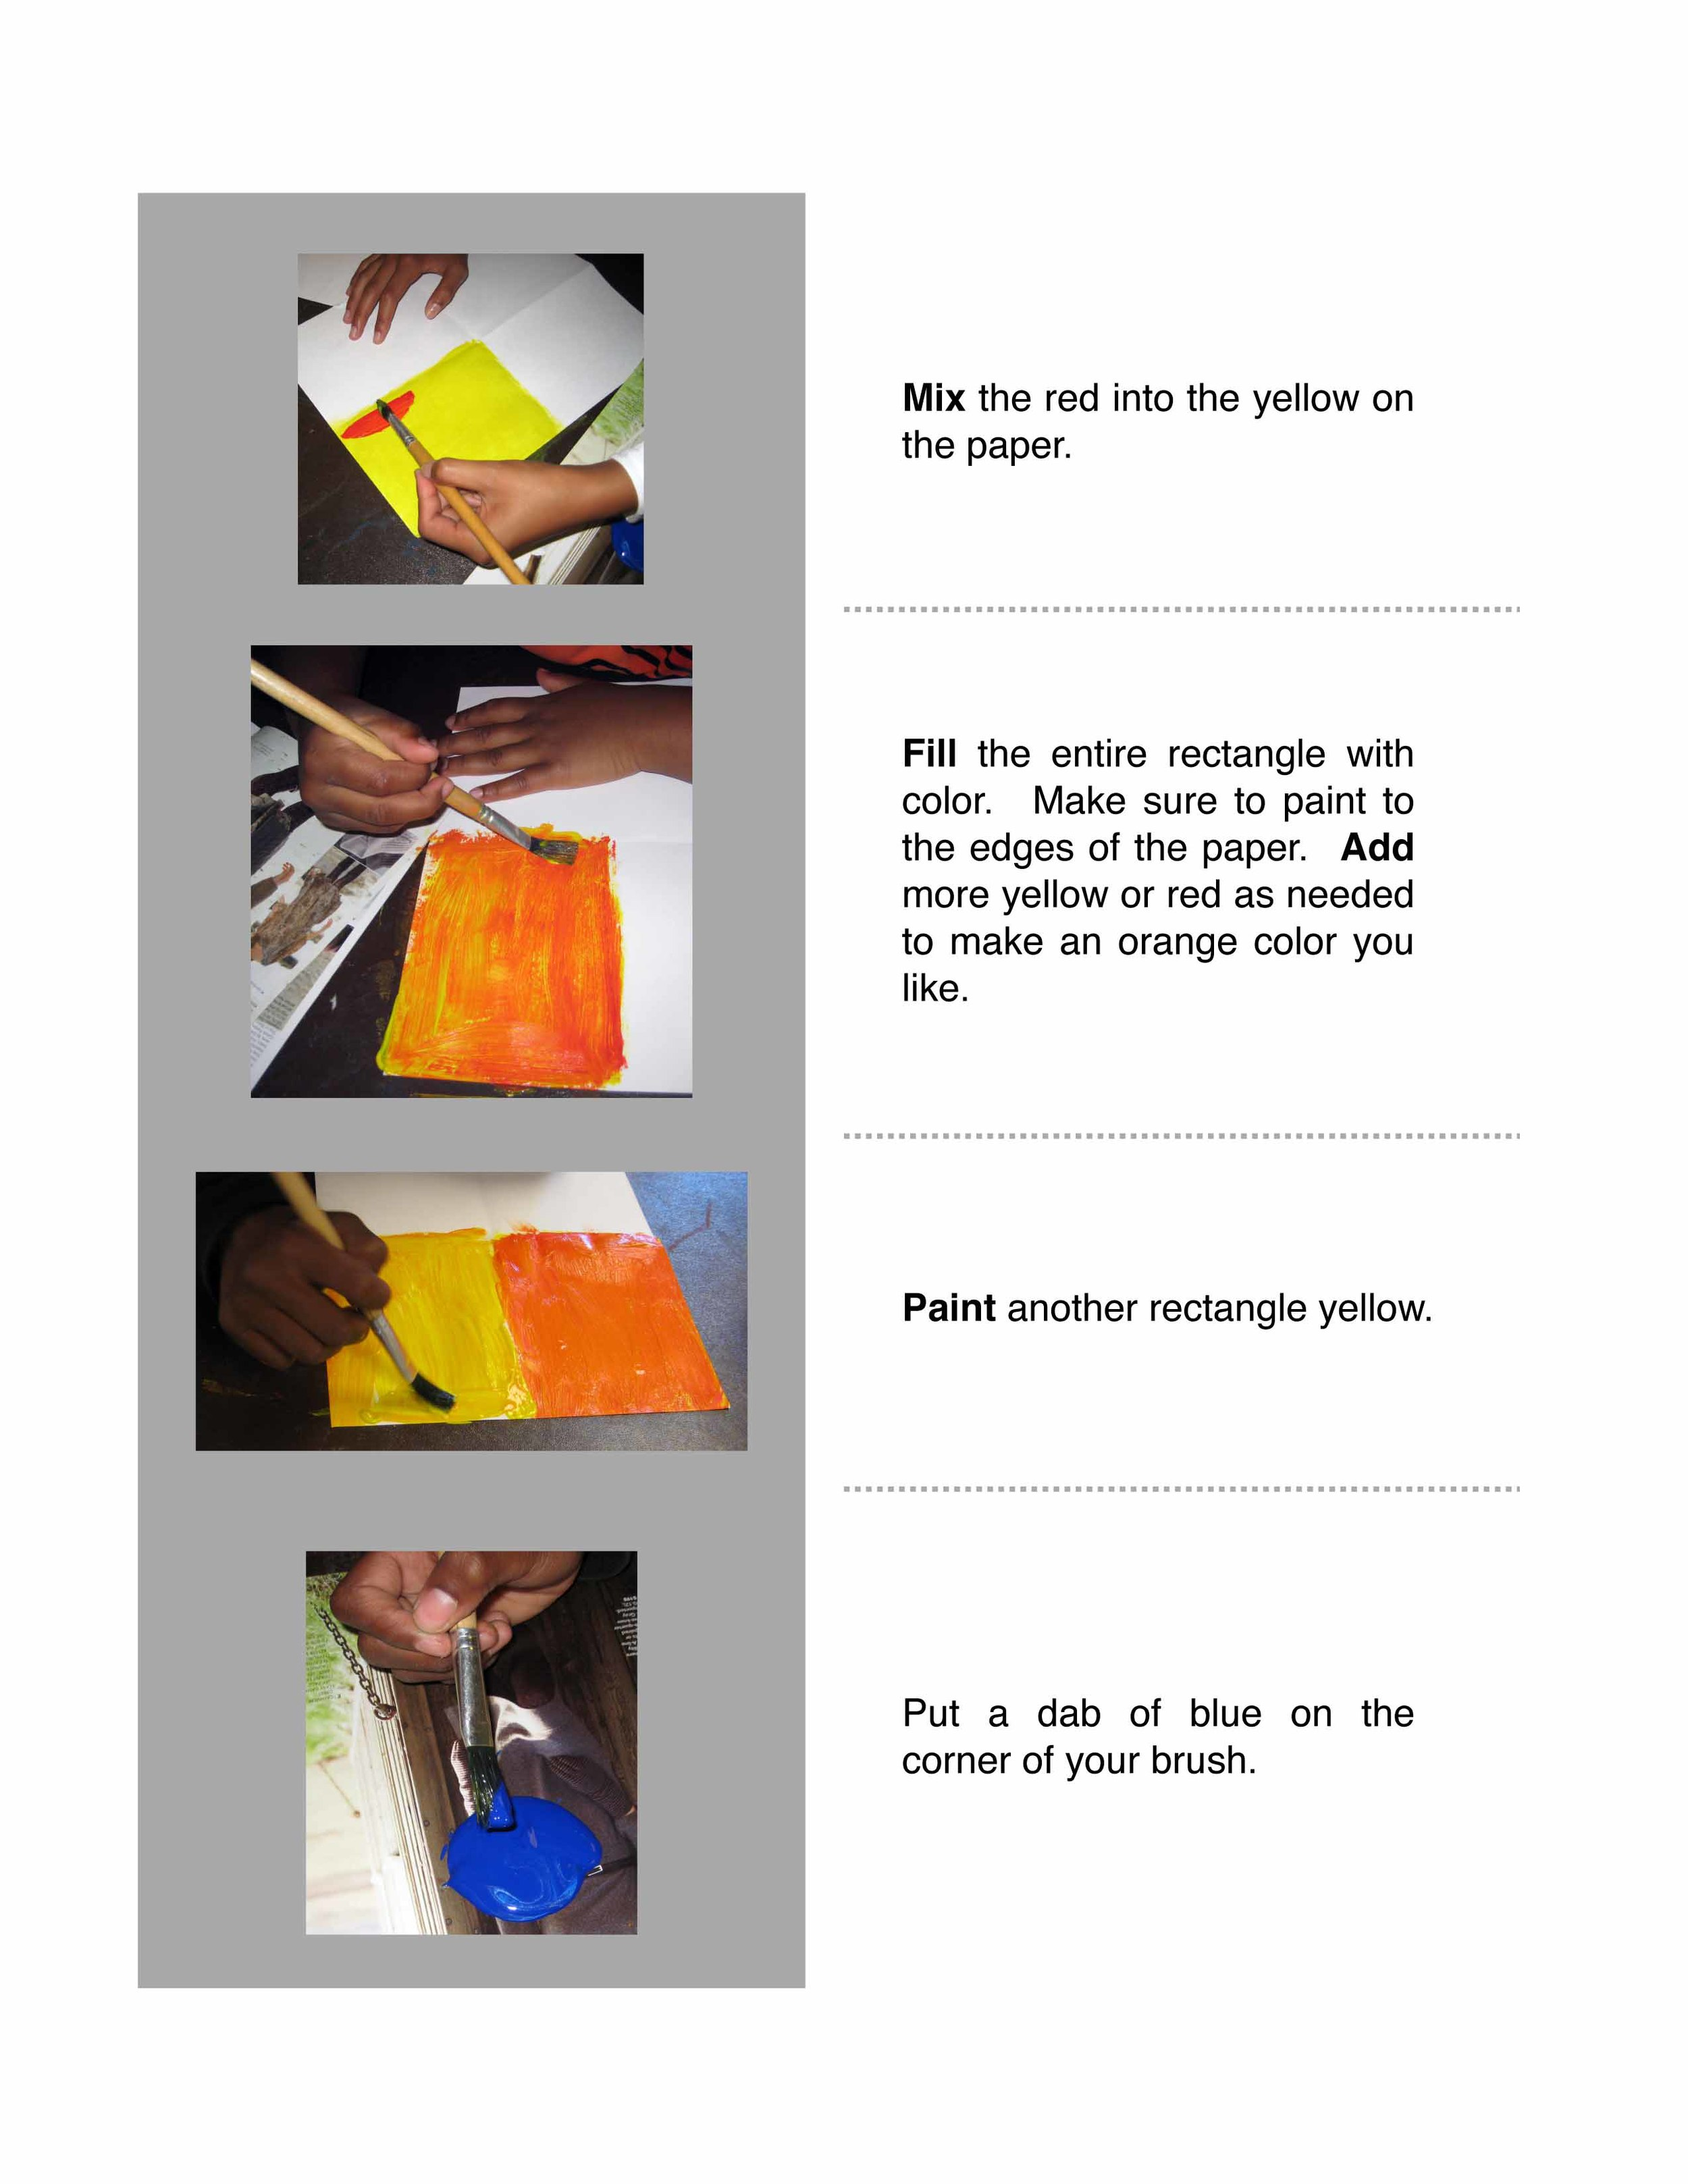 color mixing and layering learning experience-2.jpg